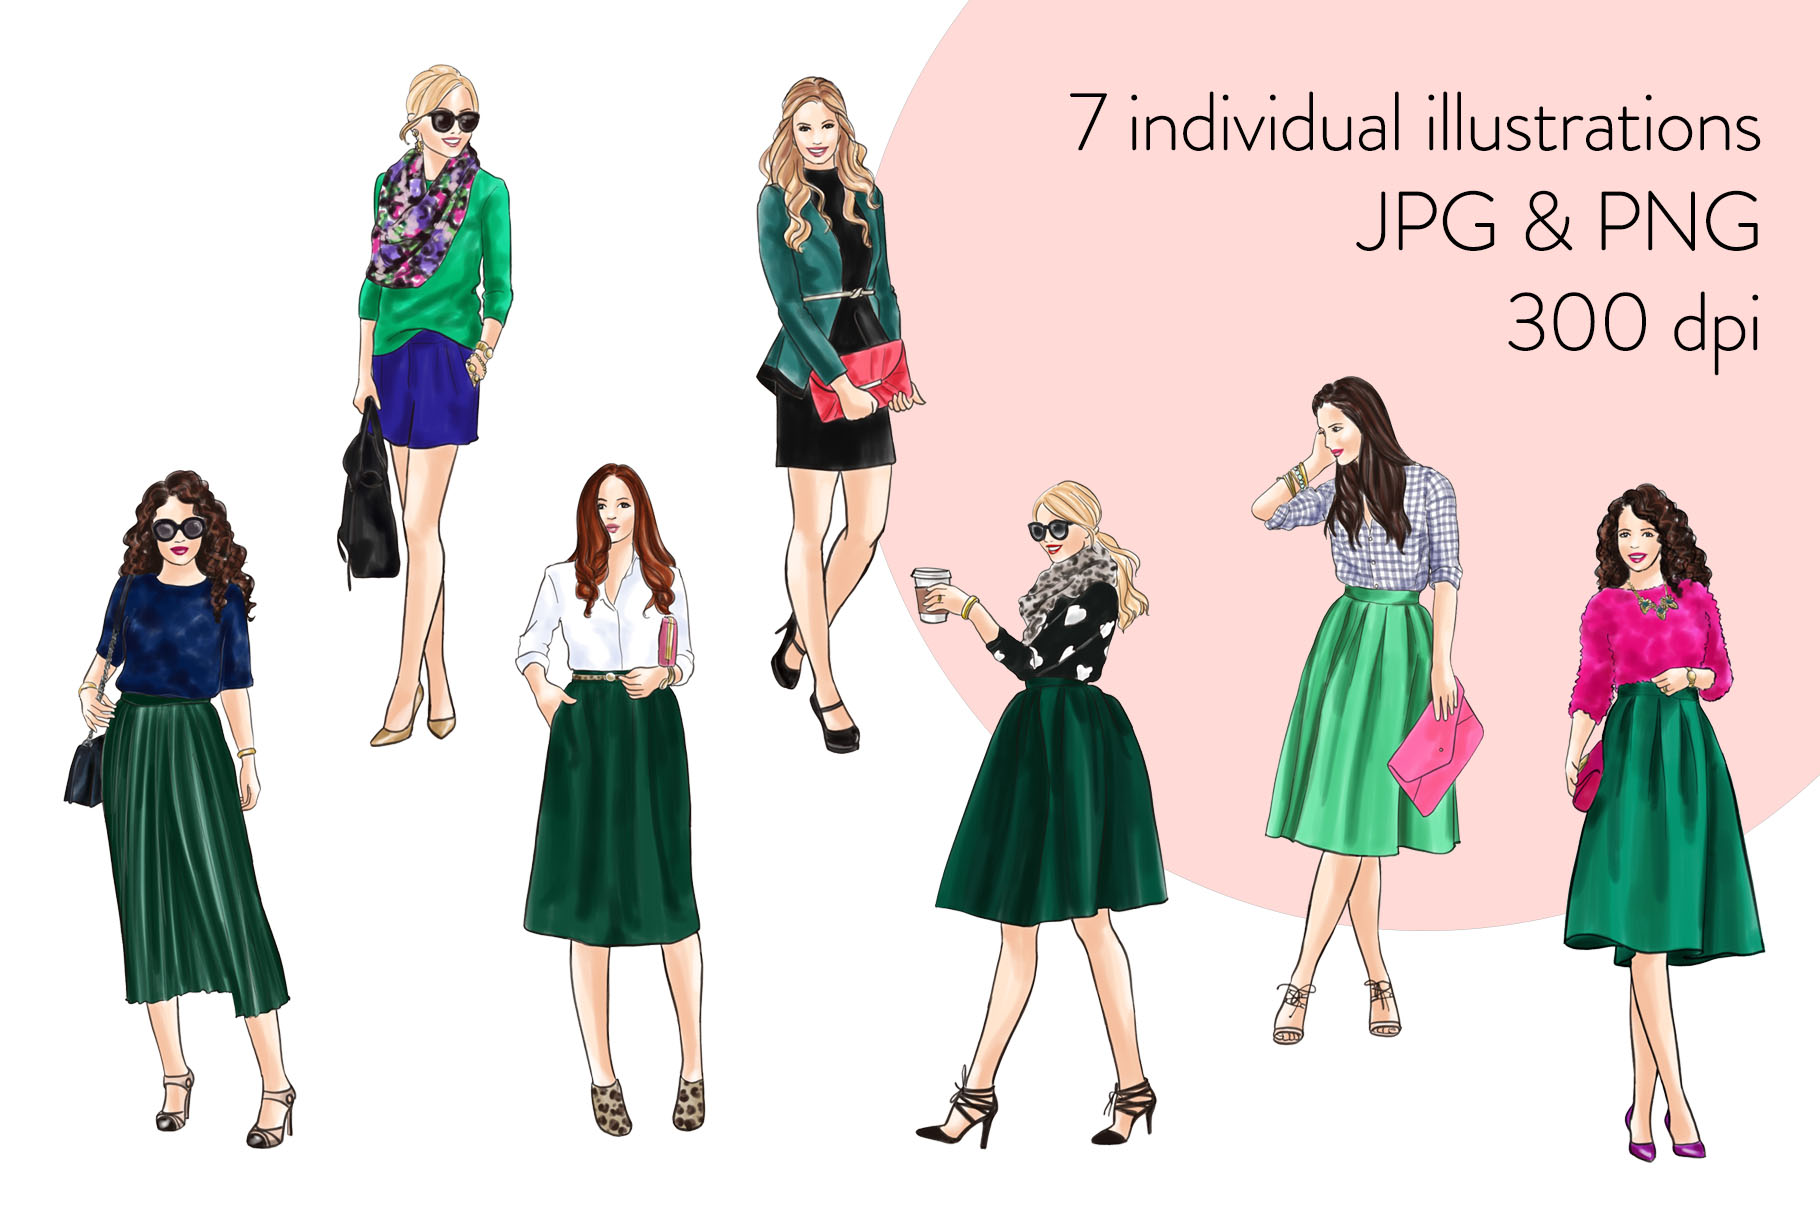 Fashion illustration clipart - Girls in Green 2 - Light Skin example image 2